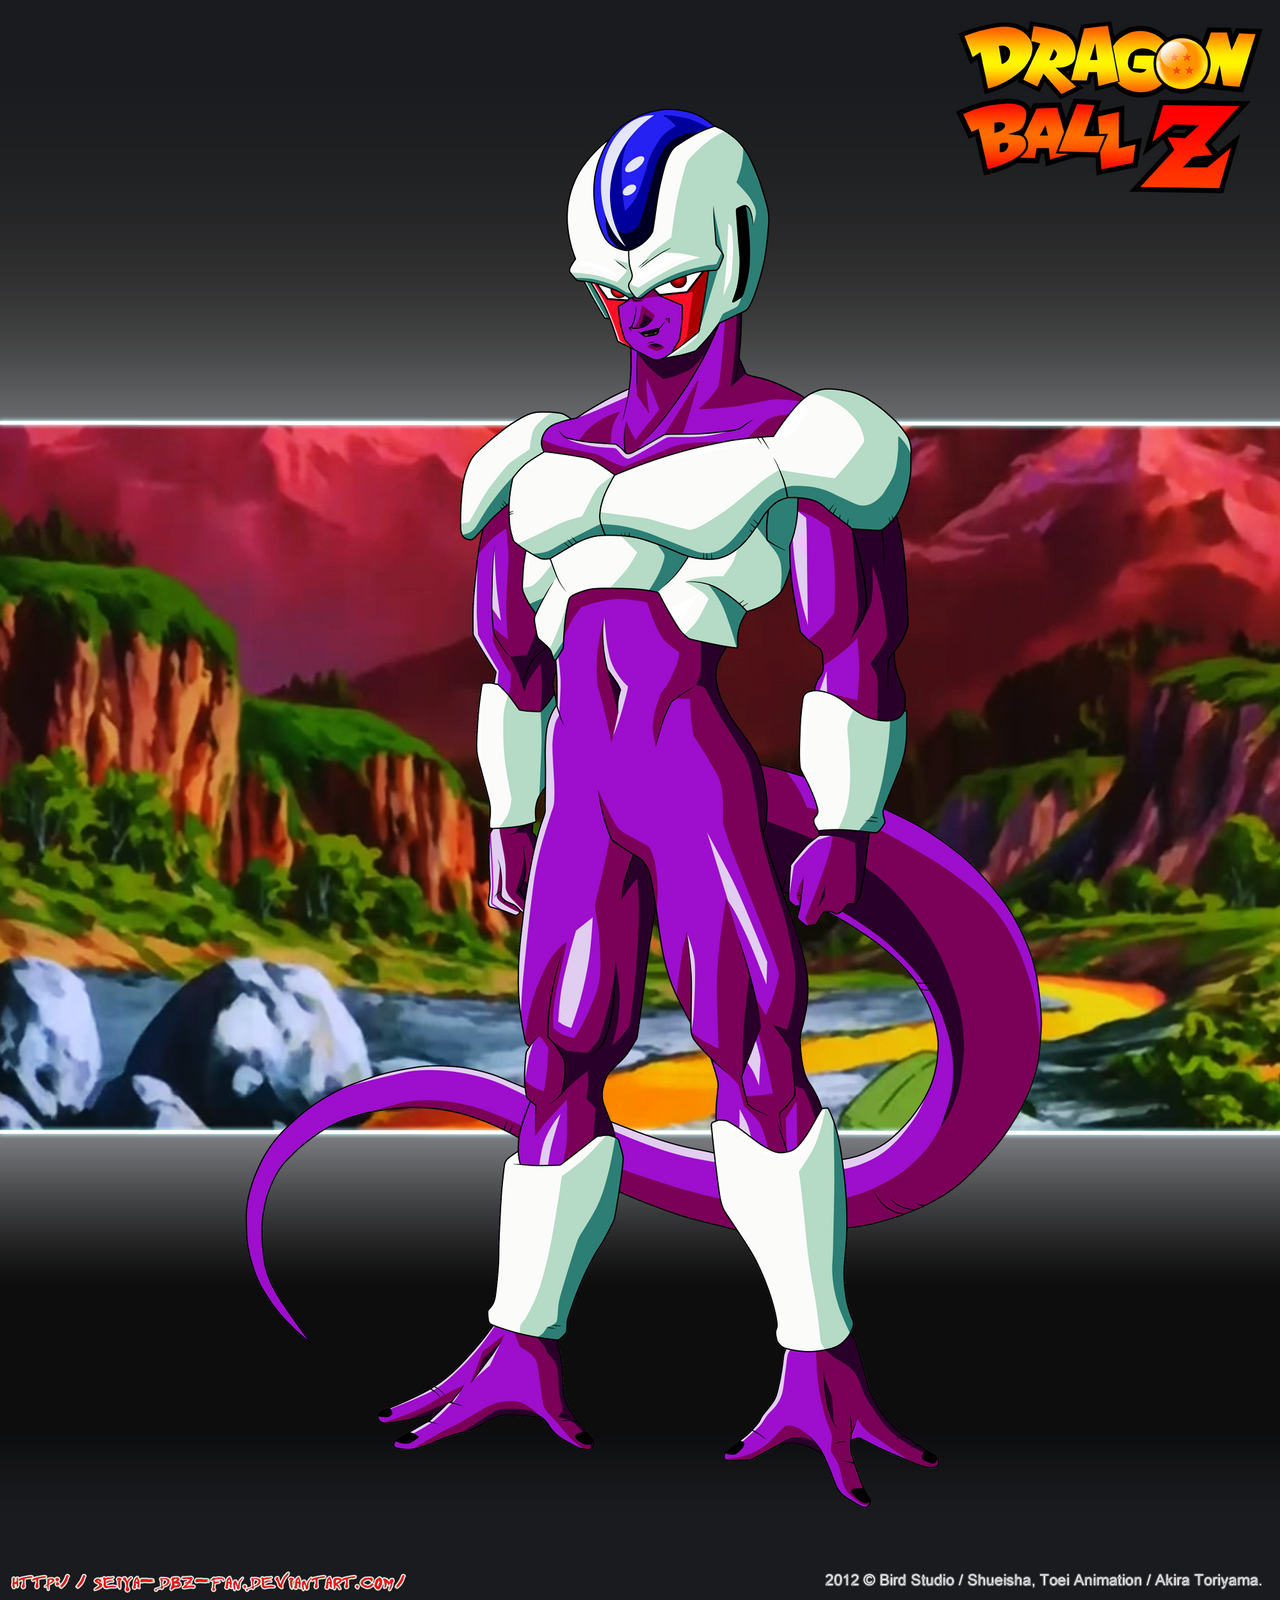 cooler_v2_bss_by_seiya_dbz_fan-d4xdujt.png